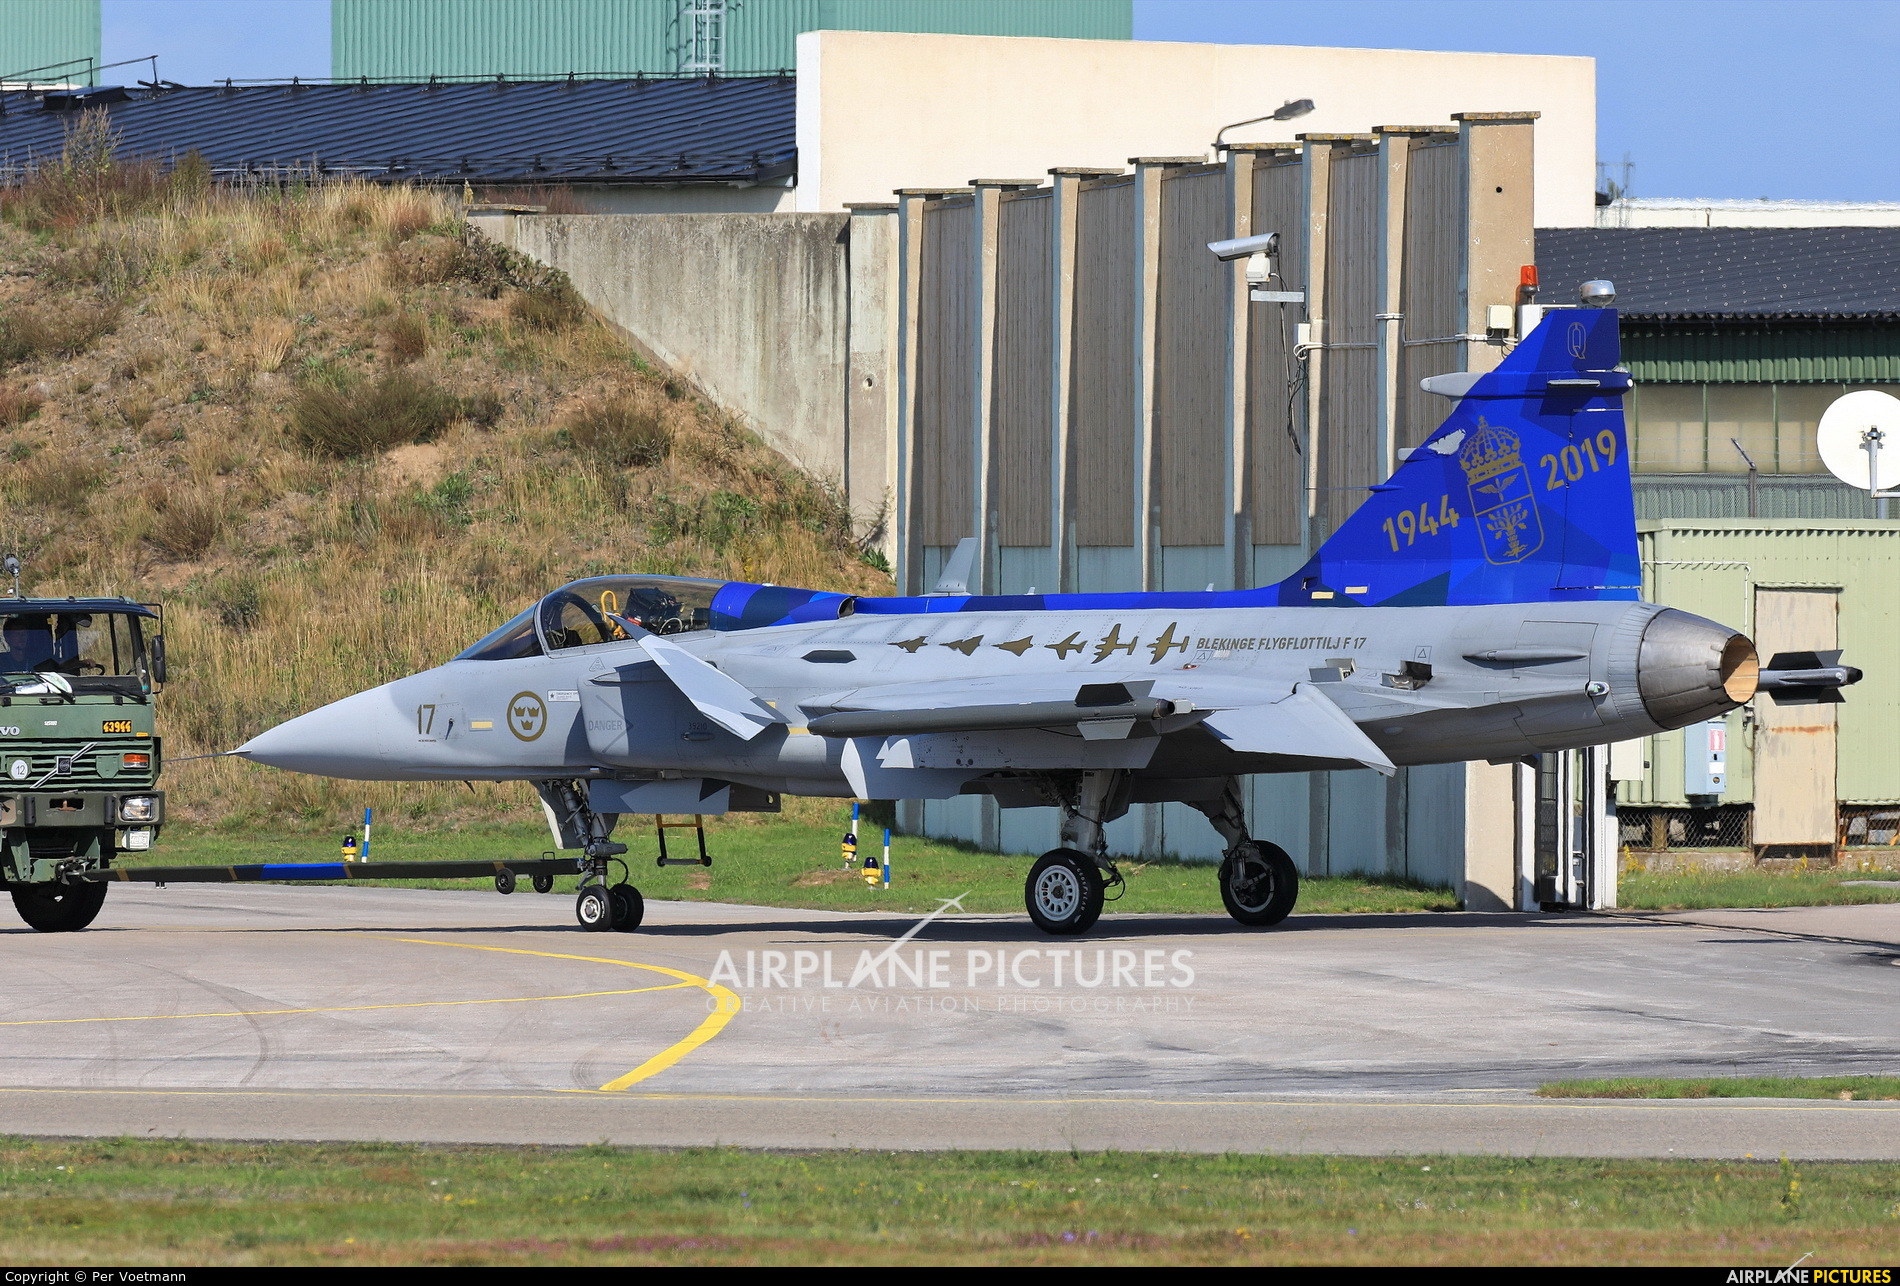 Sweden - Air Force 39210 aircraft at Ronneby